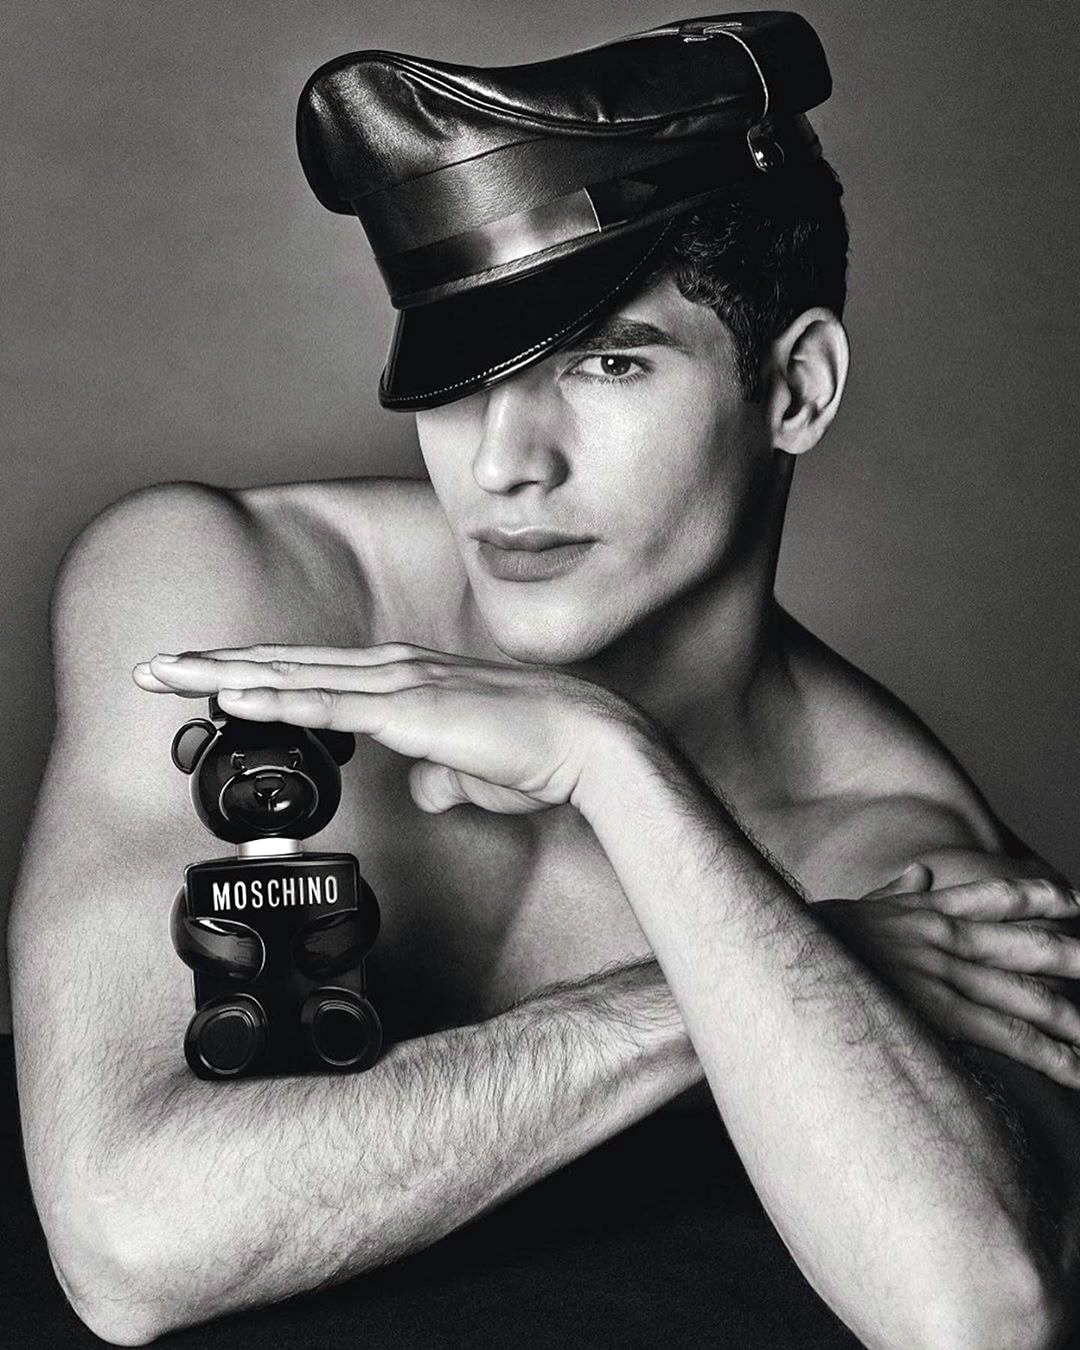 Moschino Toy Boy Fragrance Summer 2019 Ad Campaign